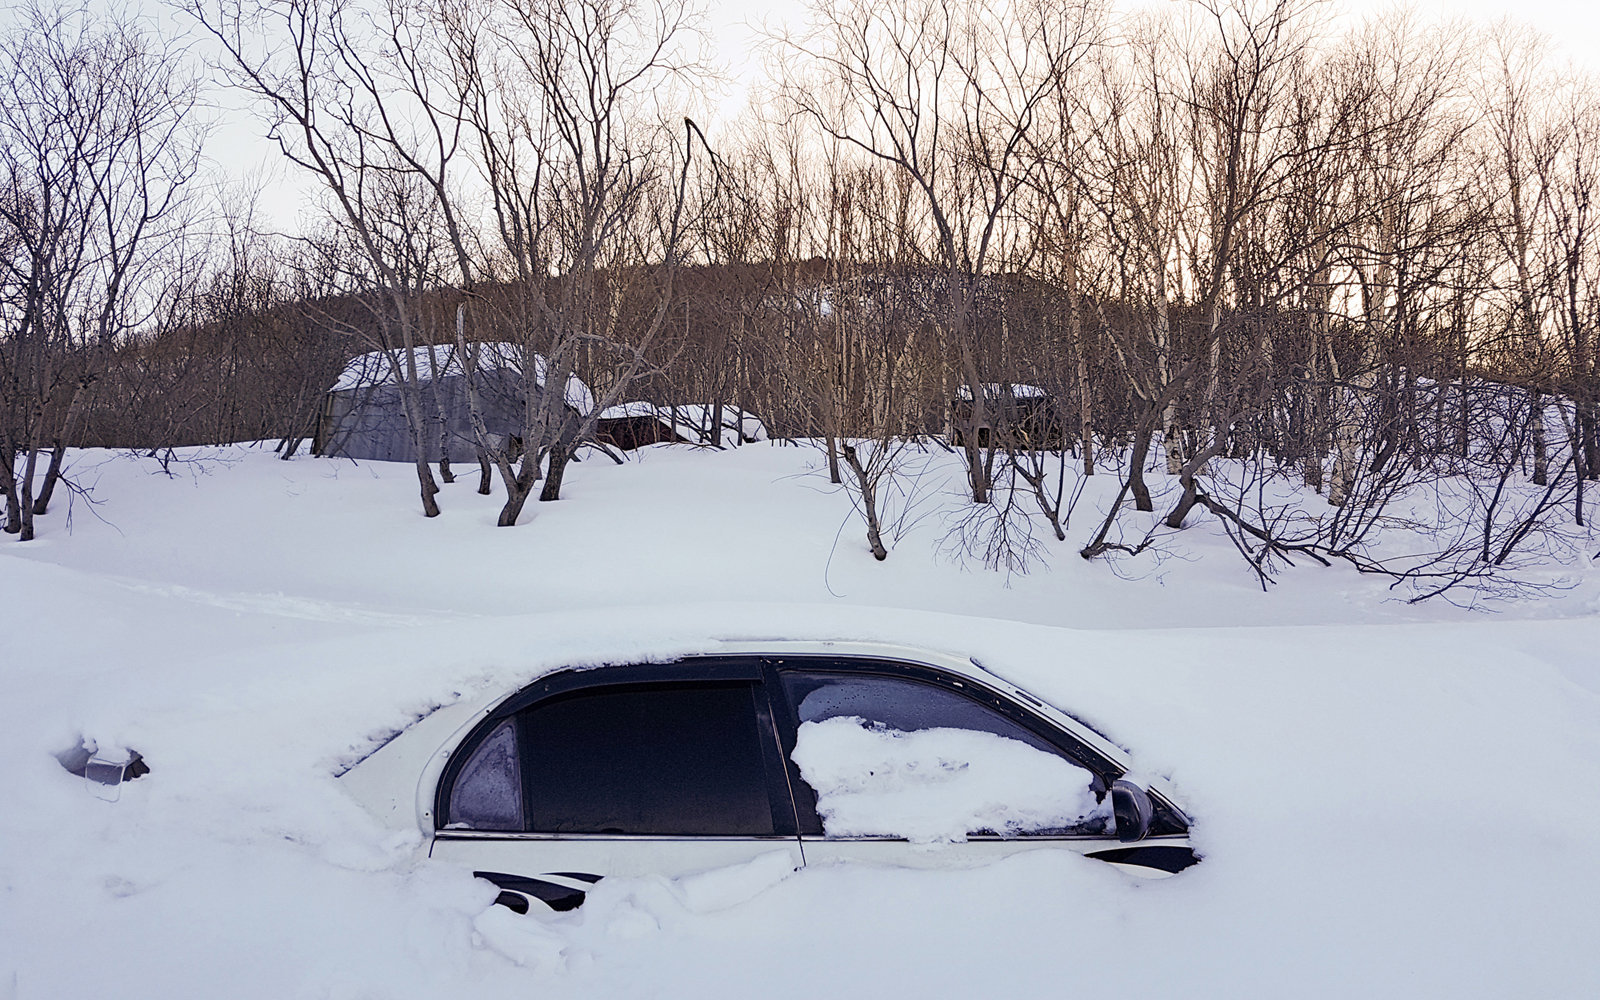 A snowed-in car in a courtyard in Petropavlovsk-Kamchatsky